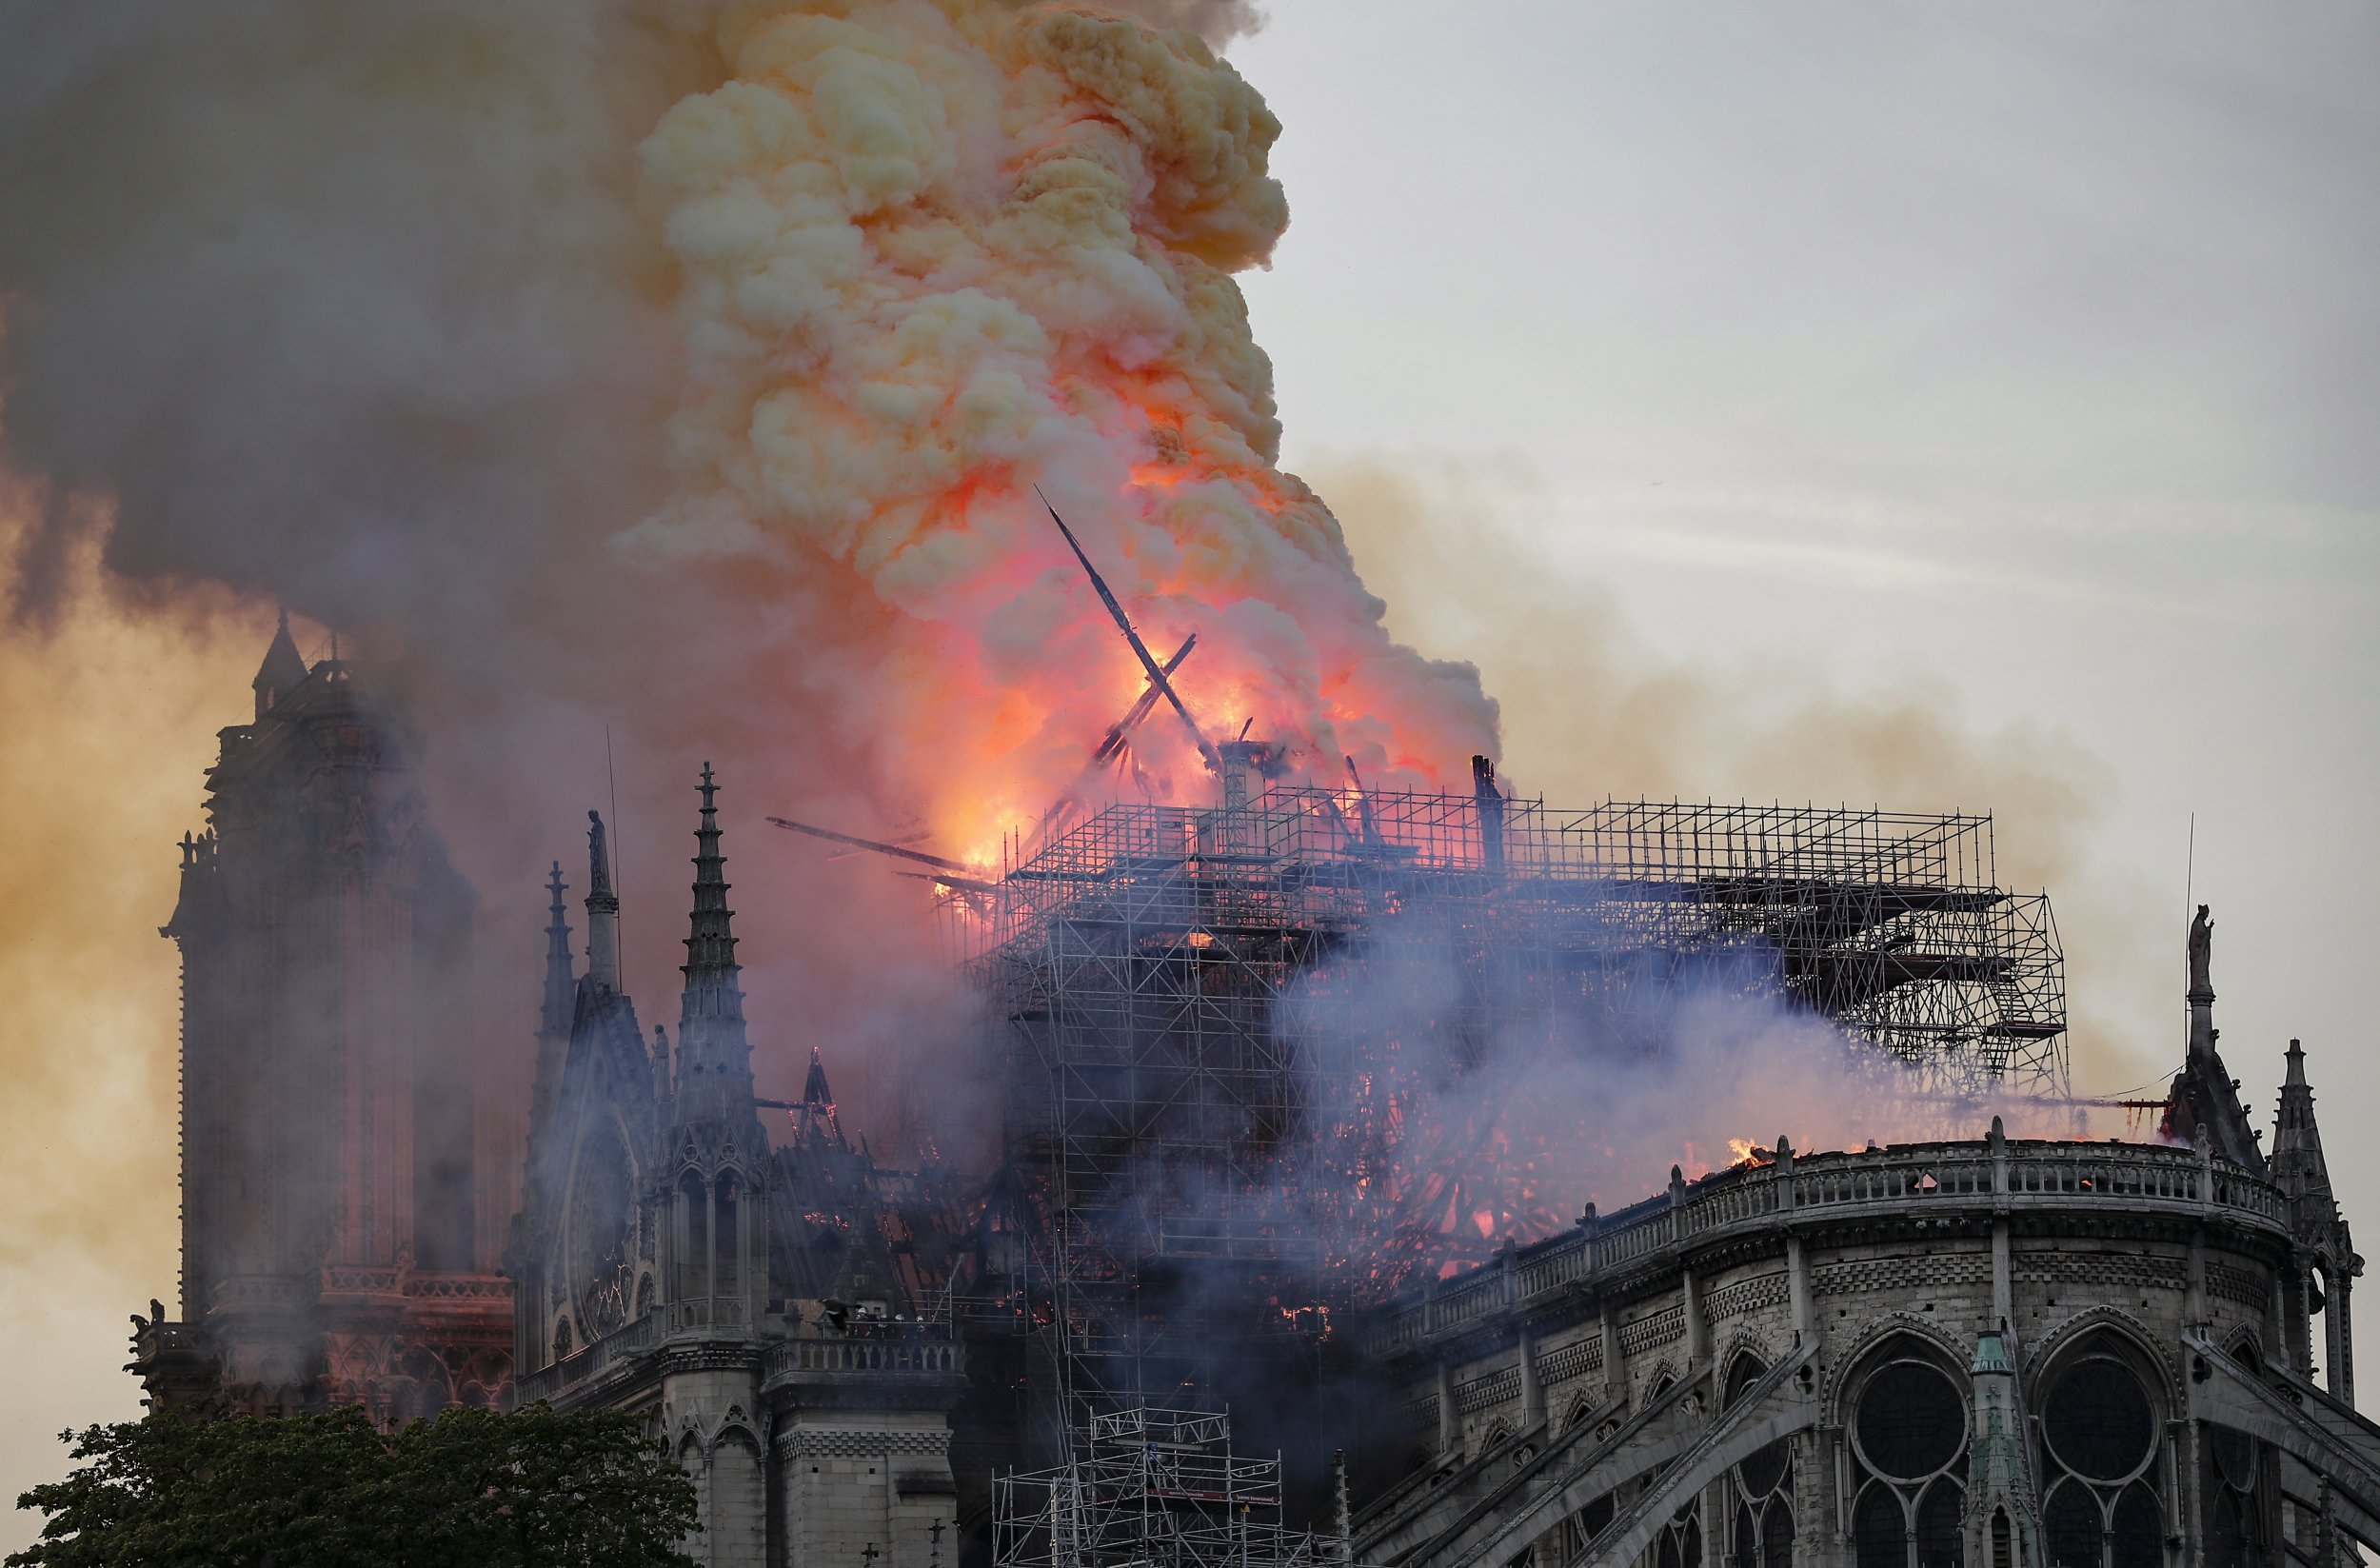 epa07509101 The spire collapses while flames are burning the roof of the Notre-Dame Cathedral in Paris, France, 15 April 2019. A fire started in the late afternoon in one of the most visited monuments of the French capital. EPA/IAN LANGSDON